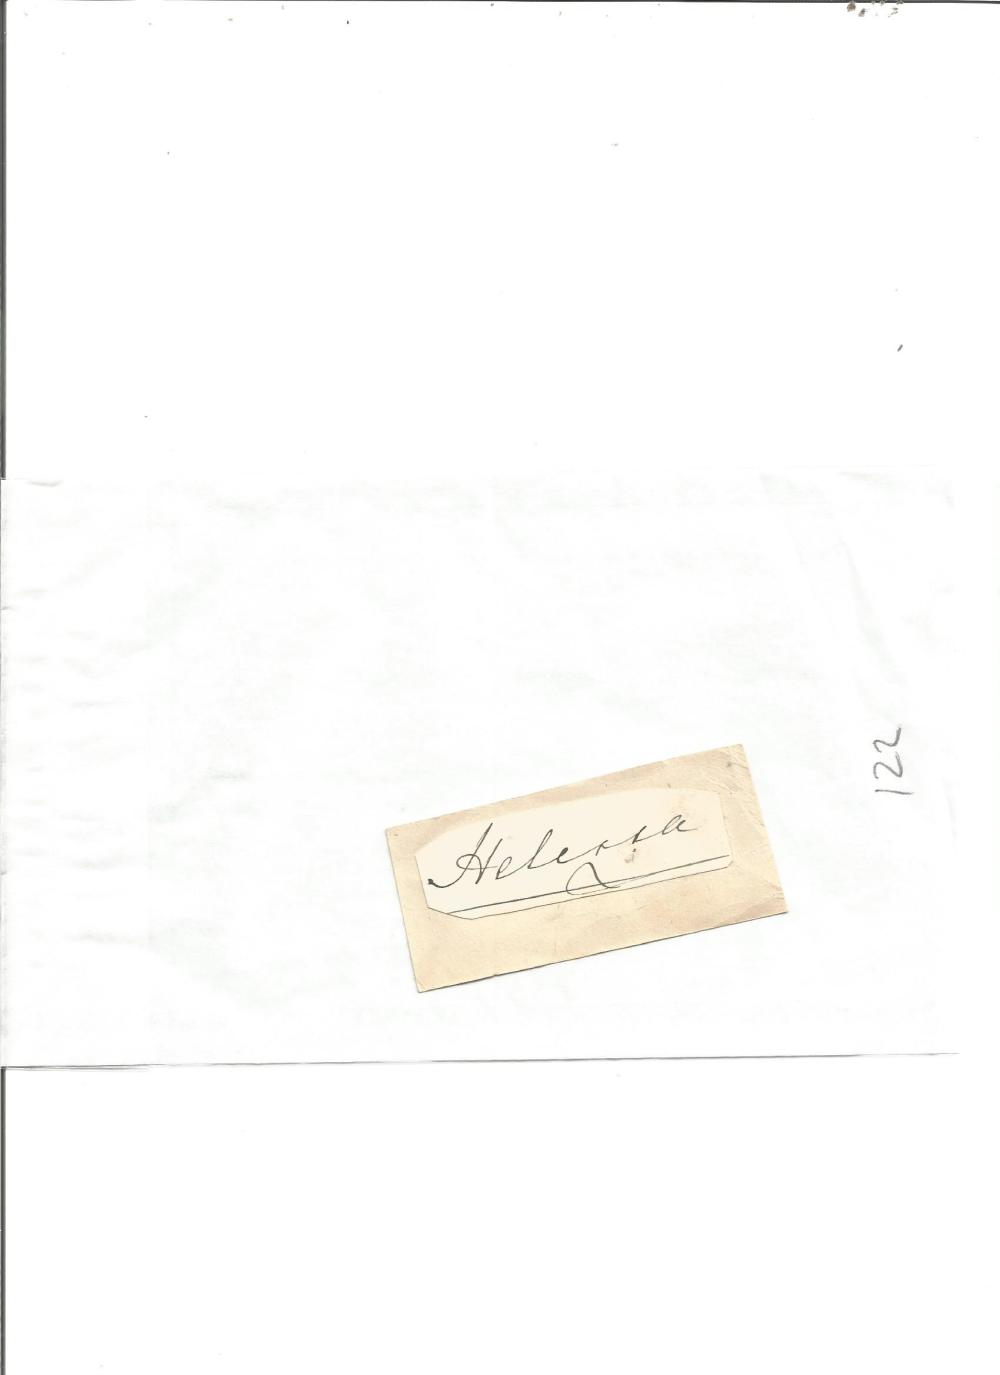 Princess Helena small signature piece laid down on card. The third daughter and fifth child of Queen